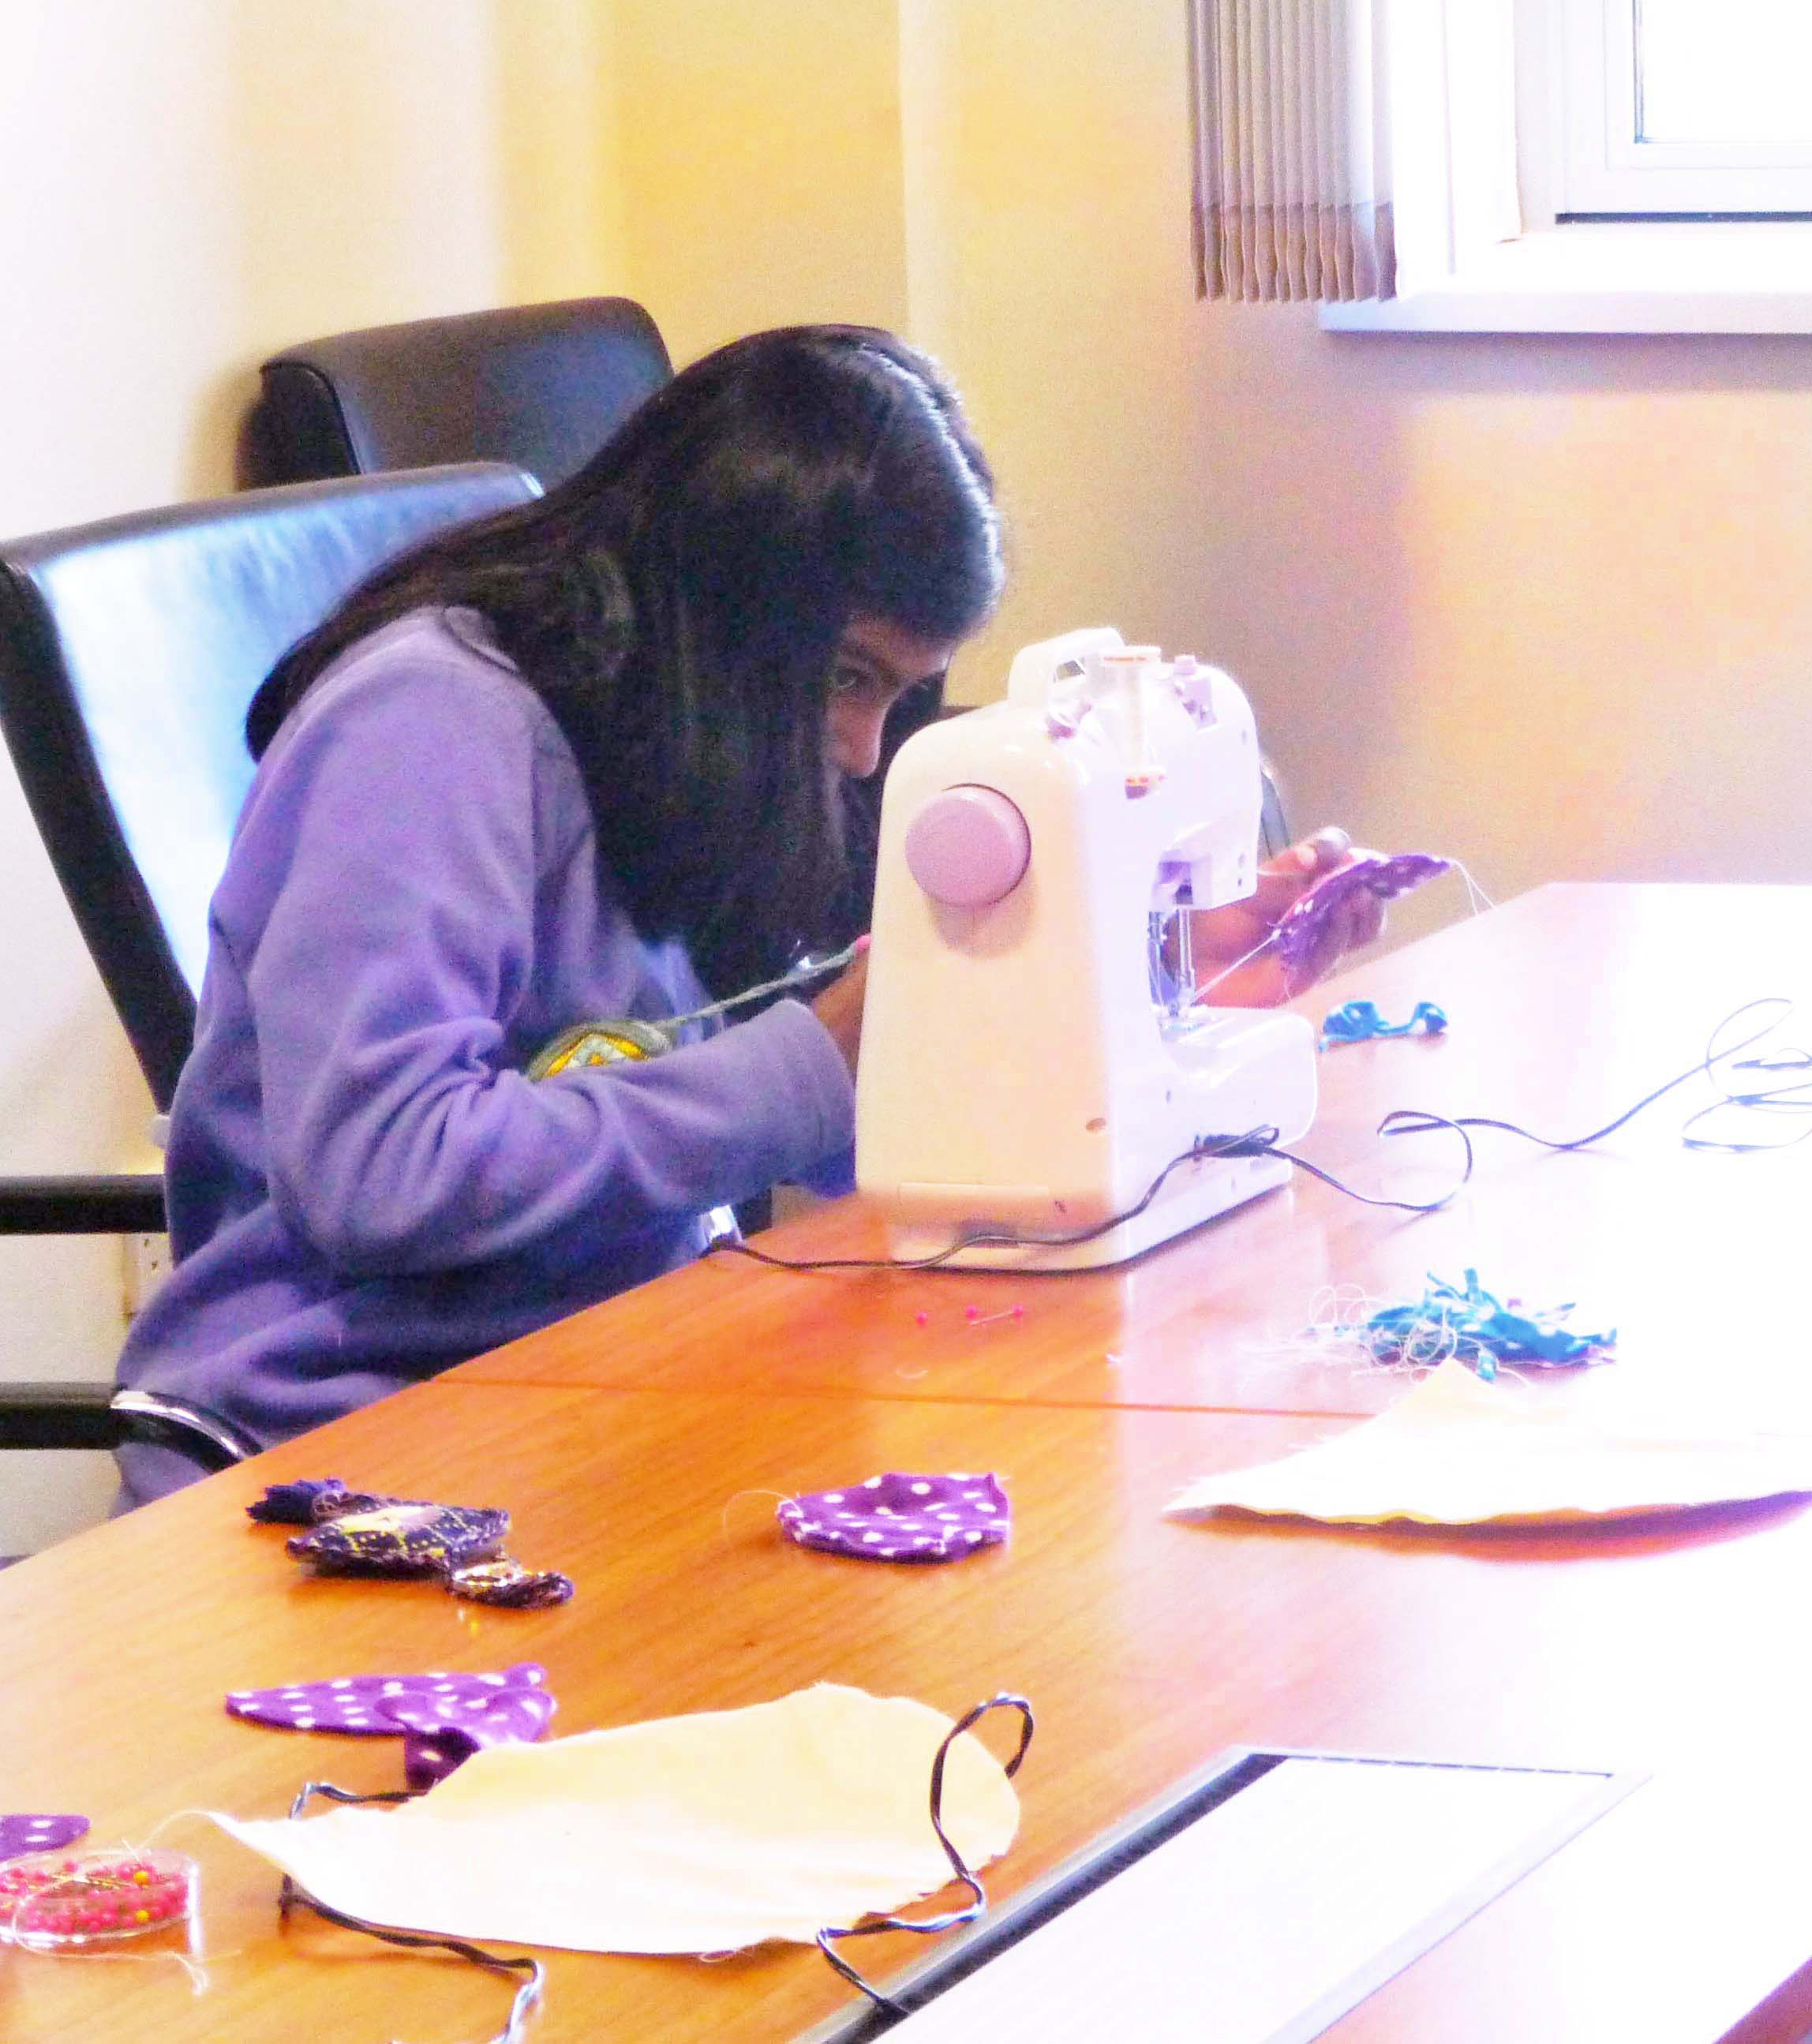 Grace is concentrating on machine sewing some ears